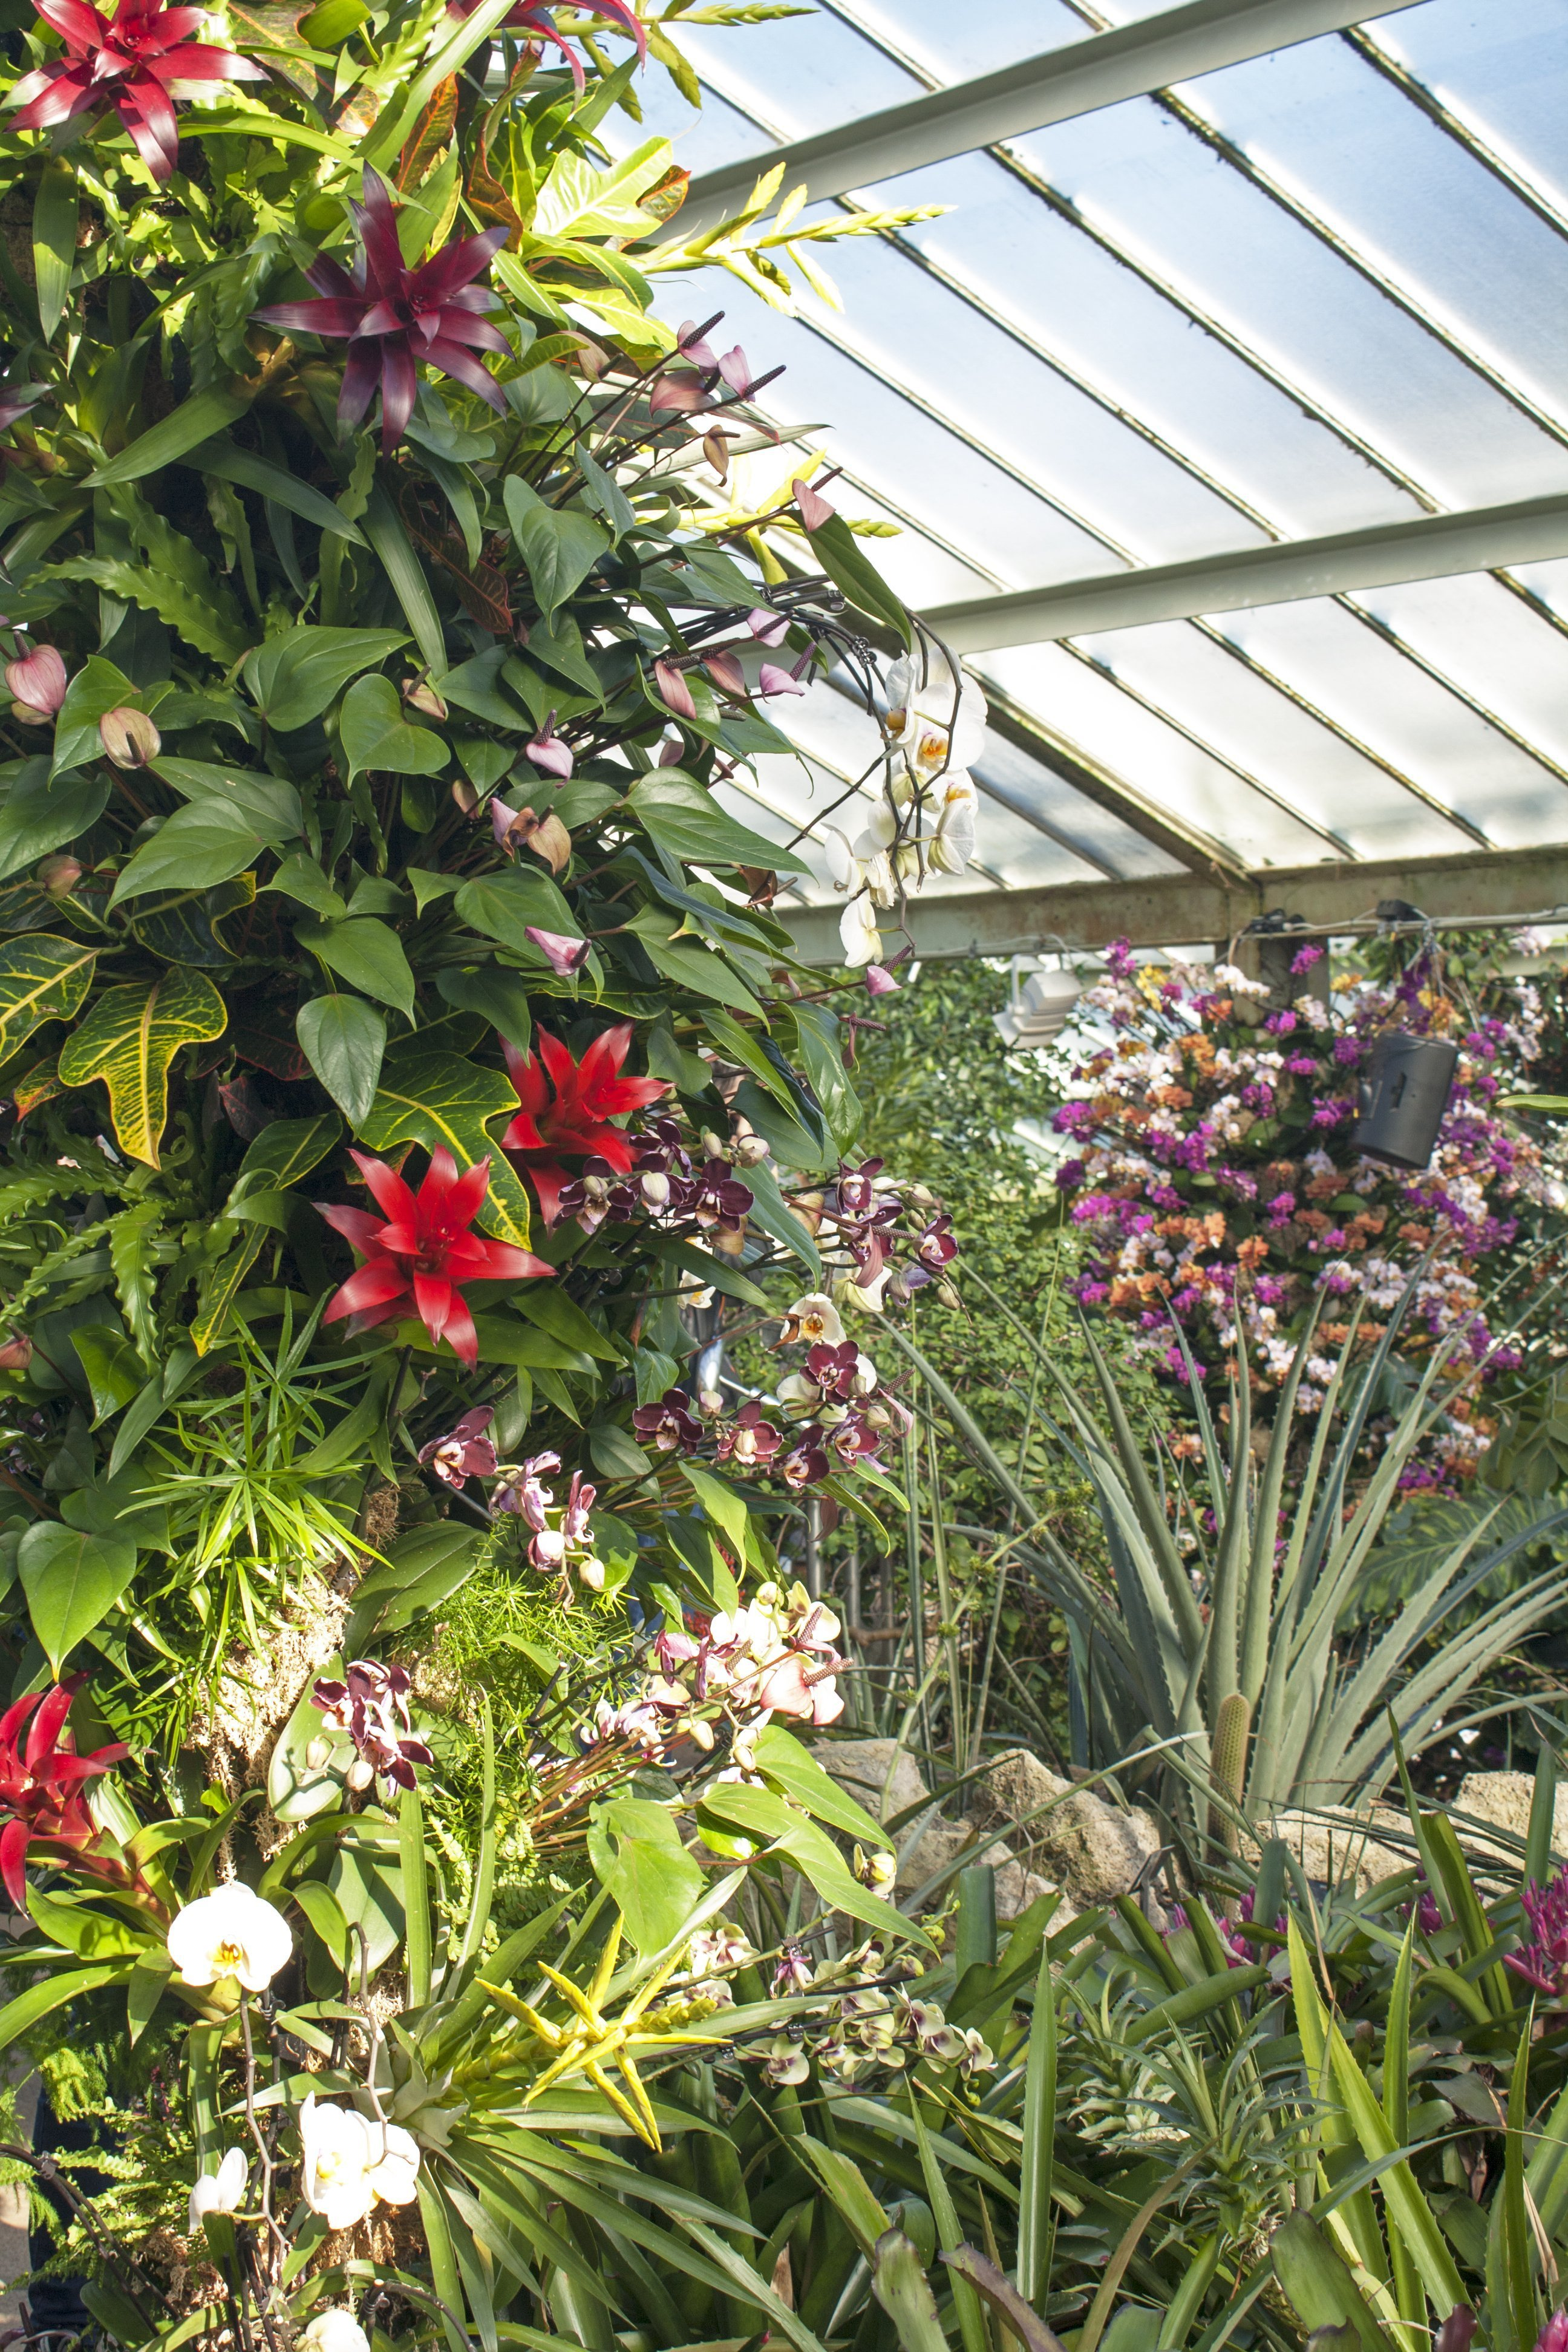 bromeliad and ivy arch at orchid festival Kew Gardens